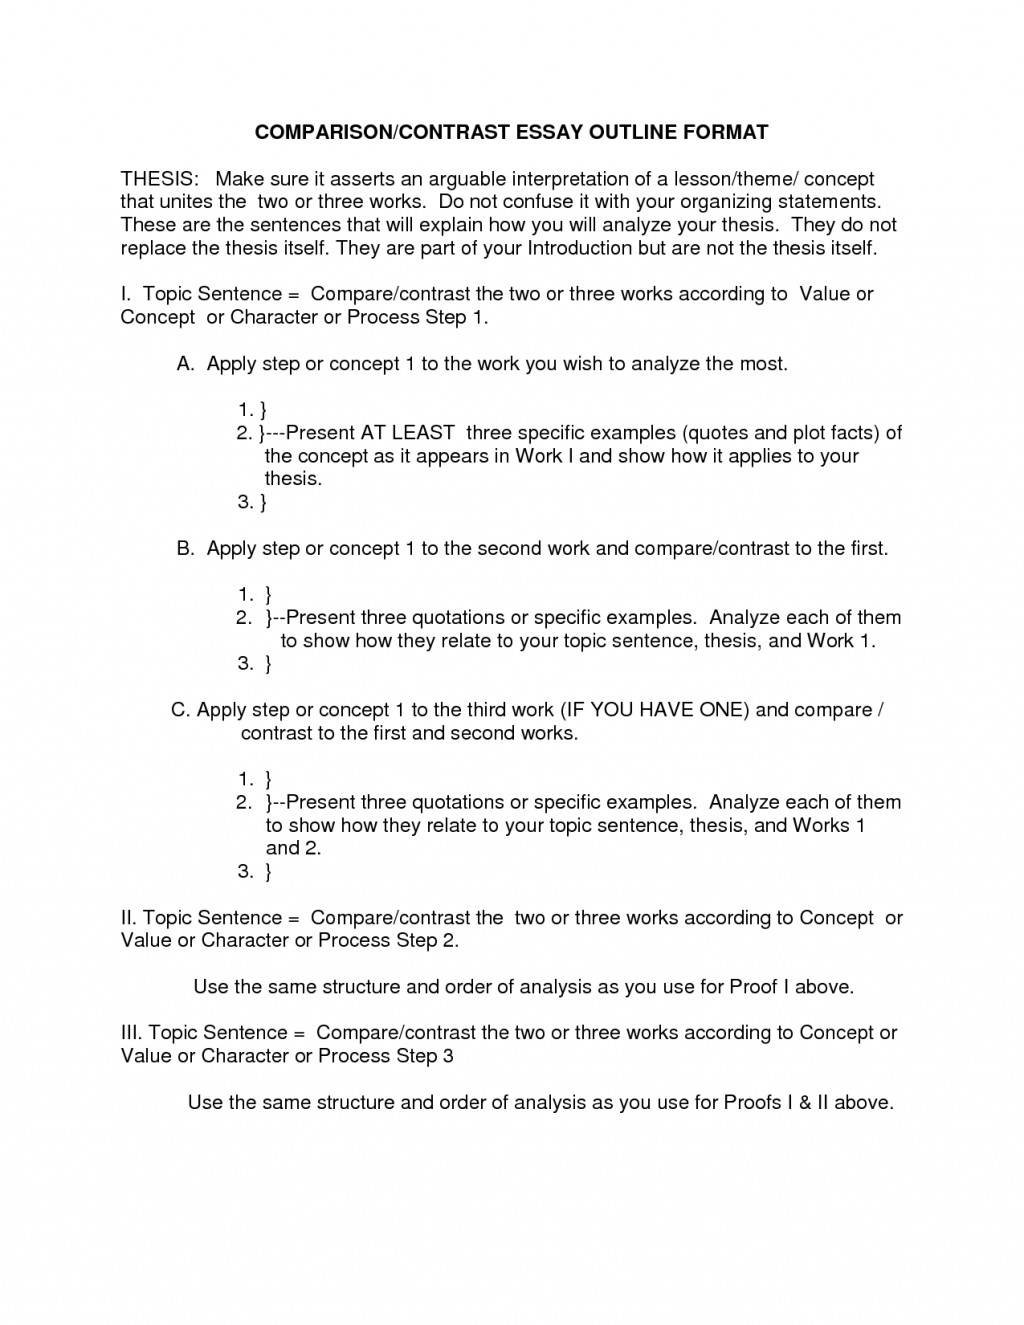 019 Essay Example Examples Of Compare And Contrast Essays Outline Format 2 Unique For High School Samples Thesis Large